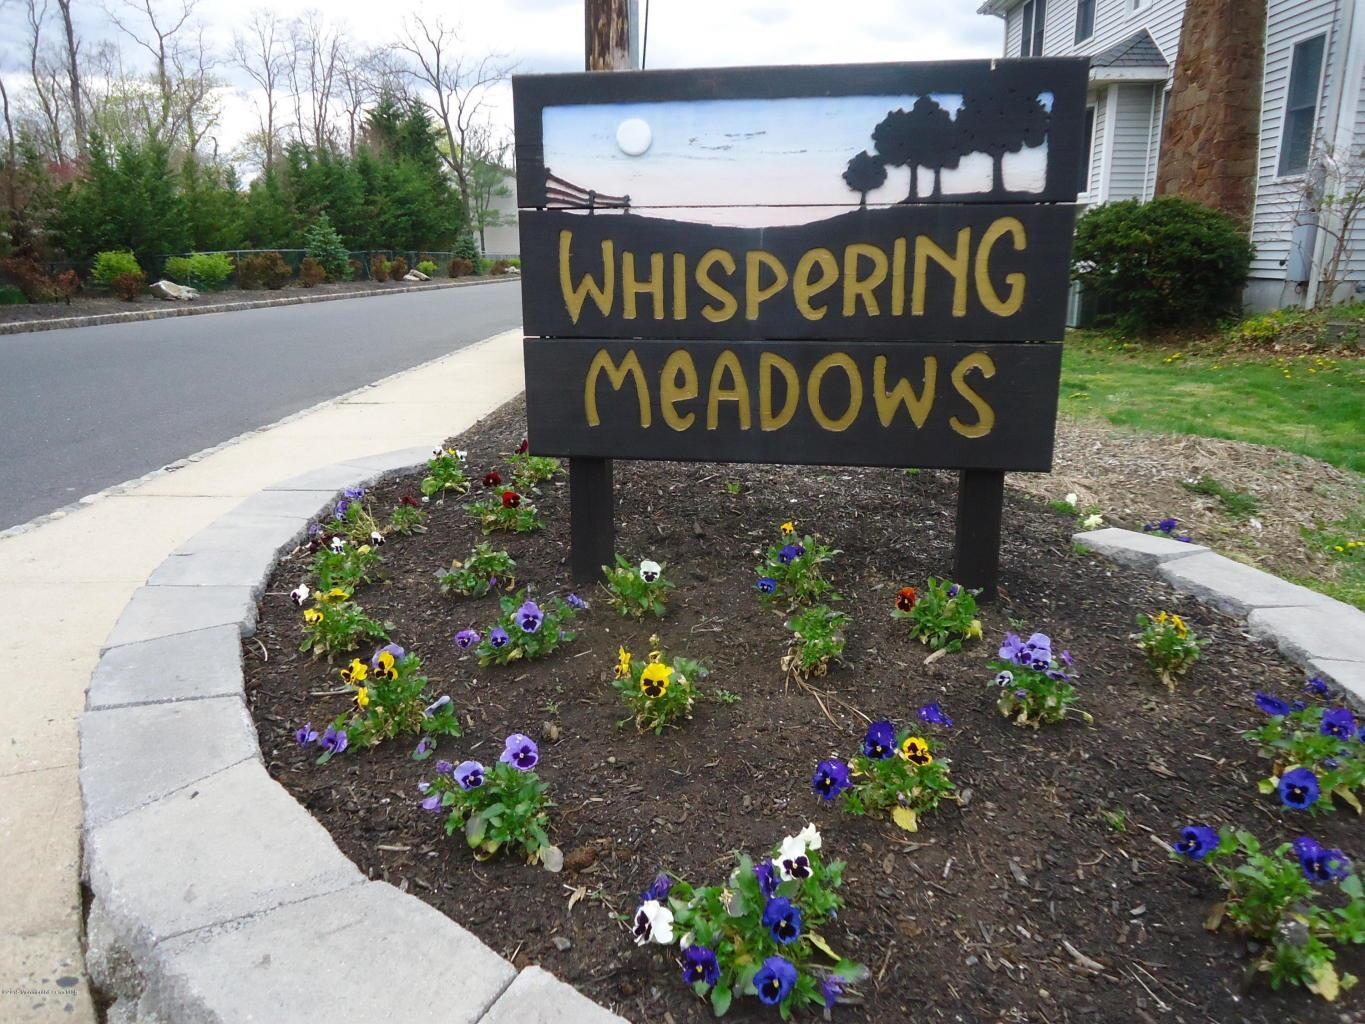 WHISPERINGMEADOWS-WLB.jpg